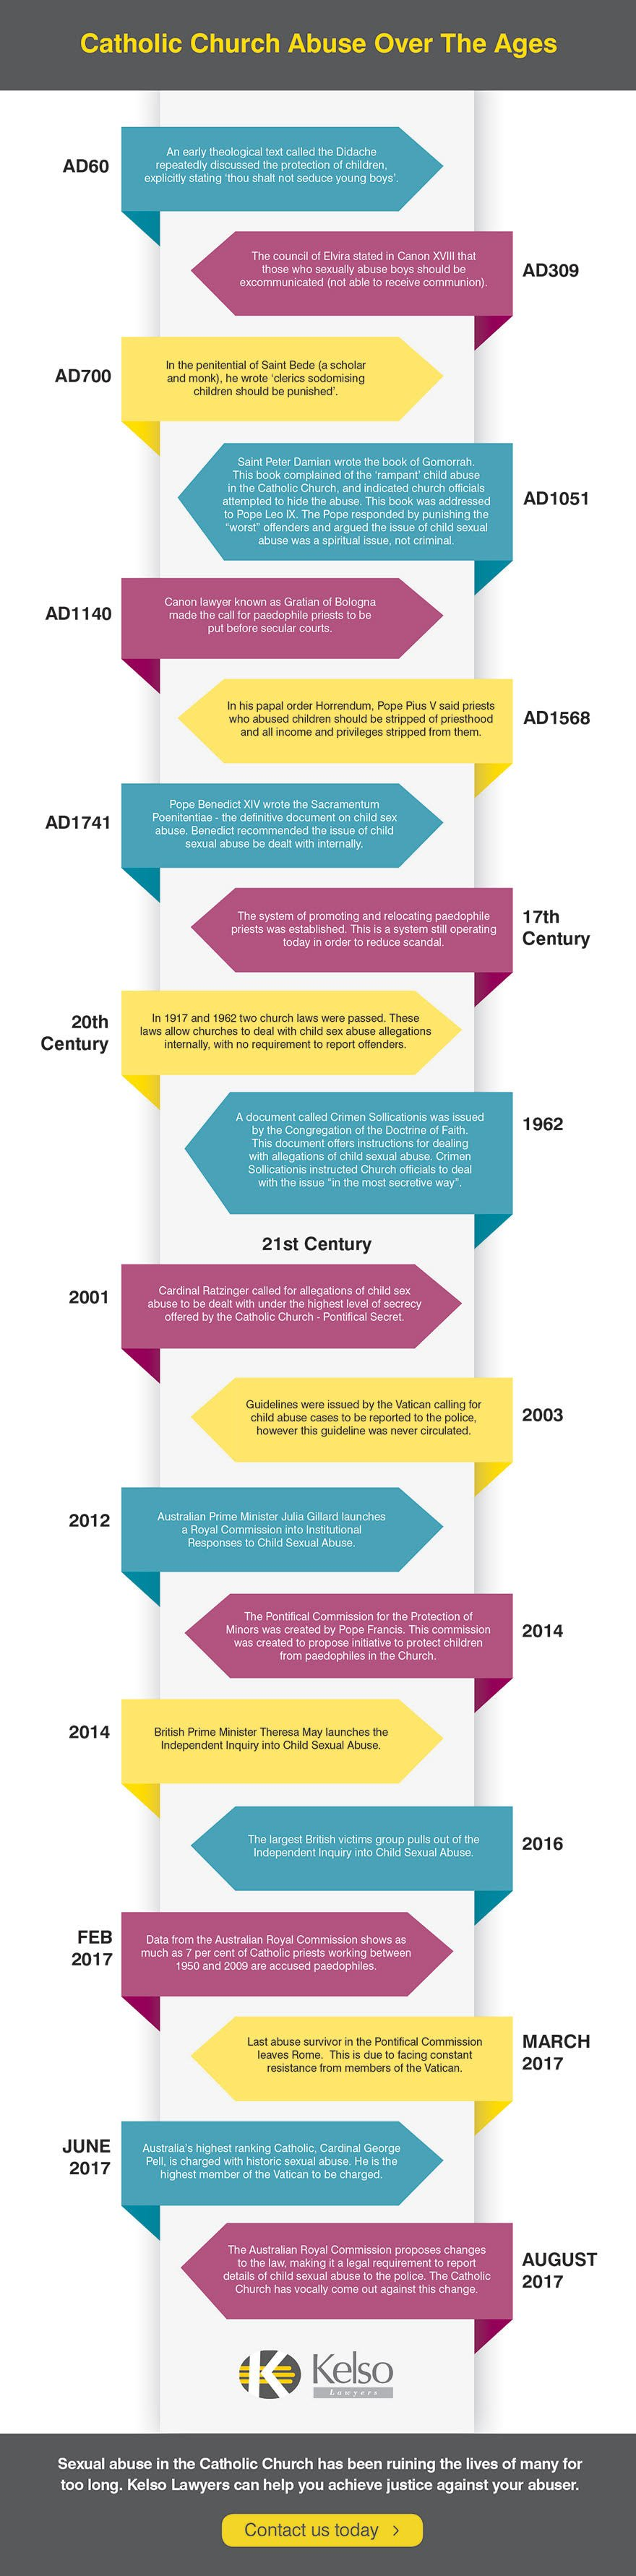 Kelso-Catholic-Abuse-Timeline